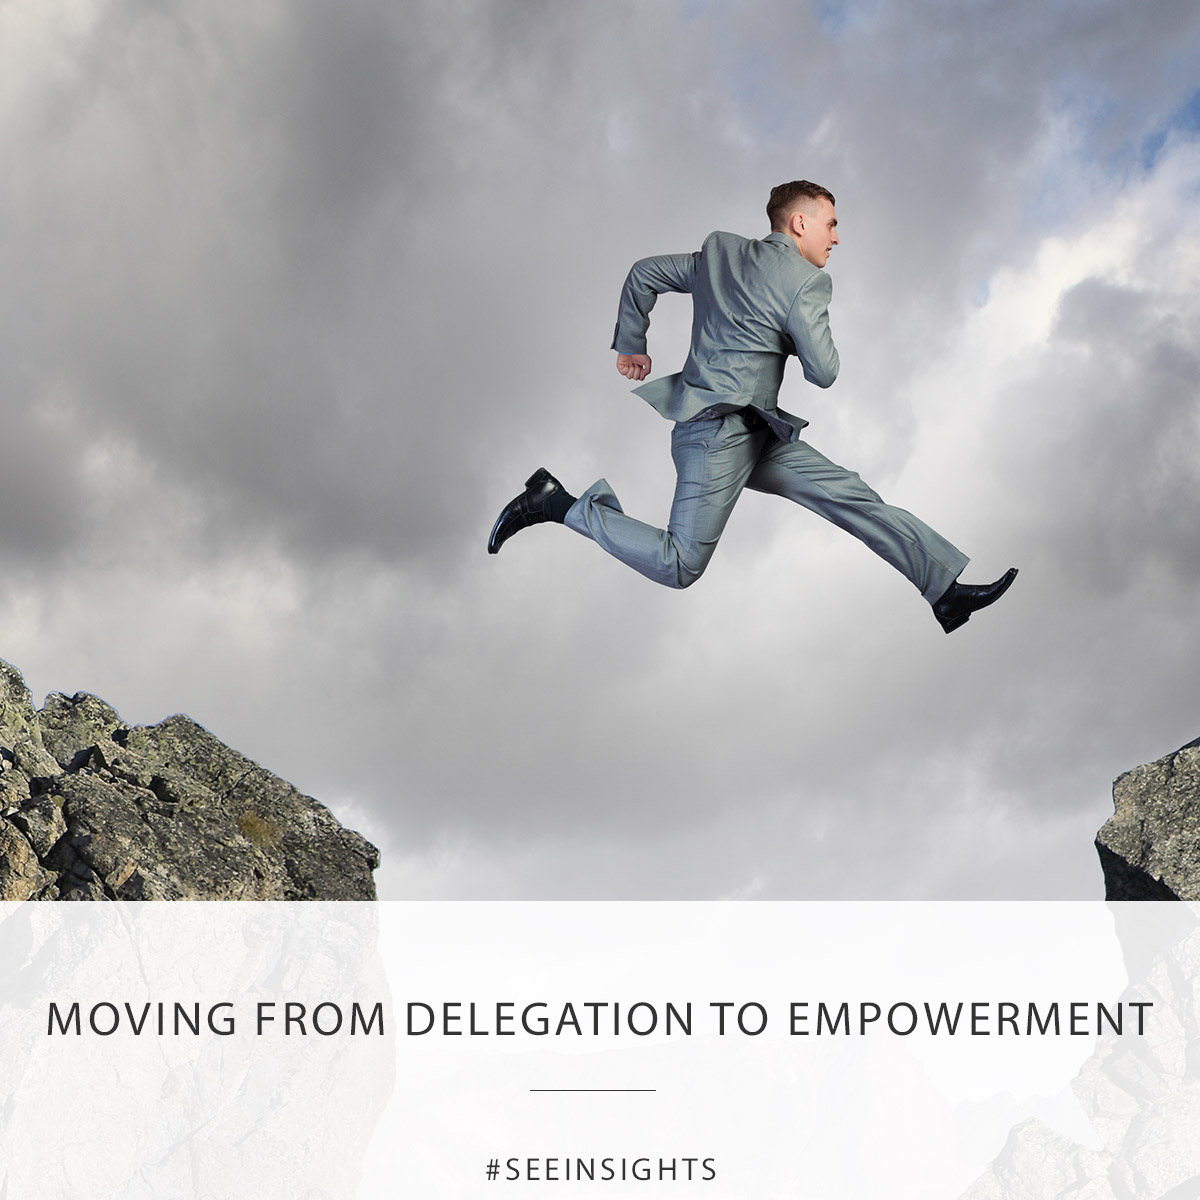 Moving from Delegation to Empowerment